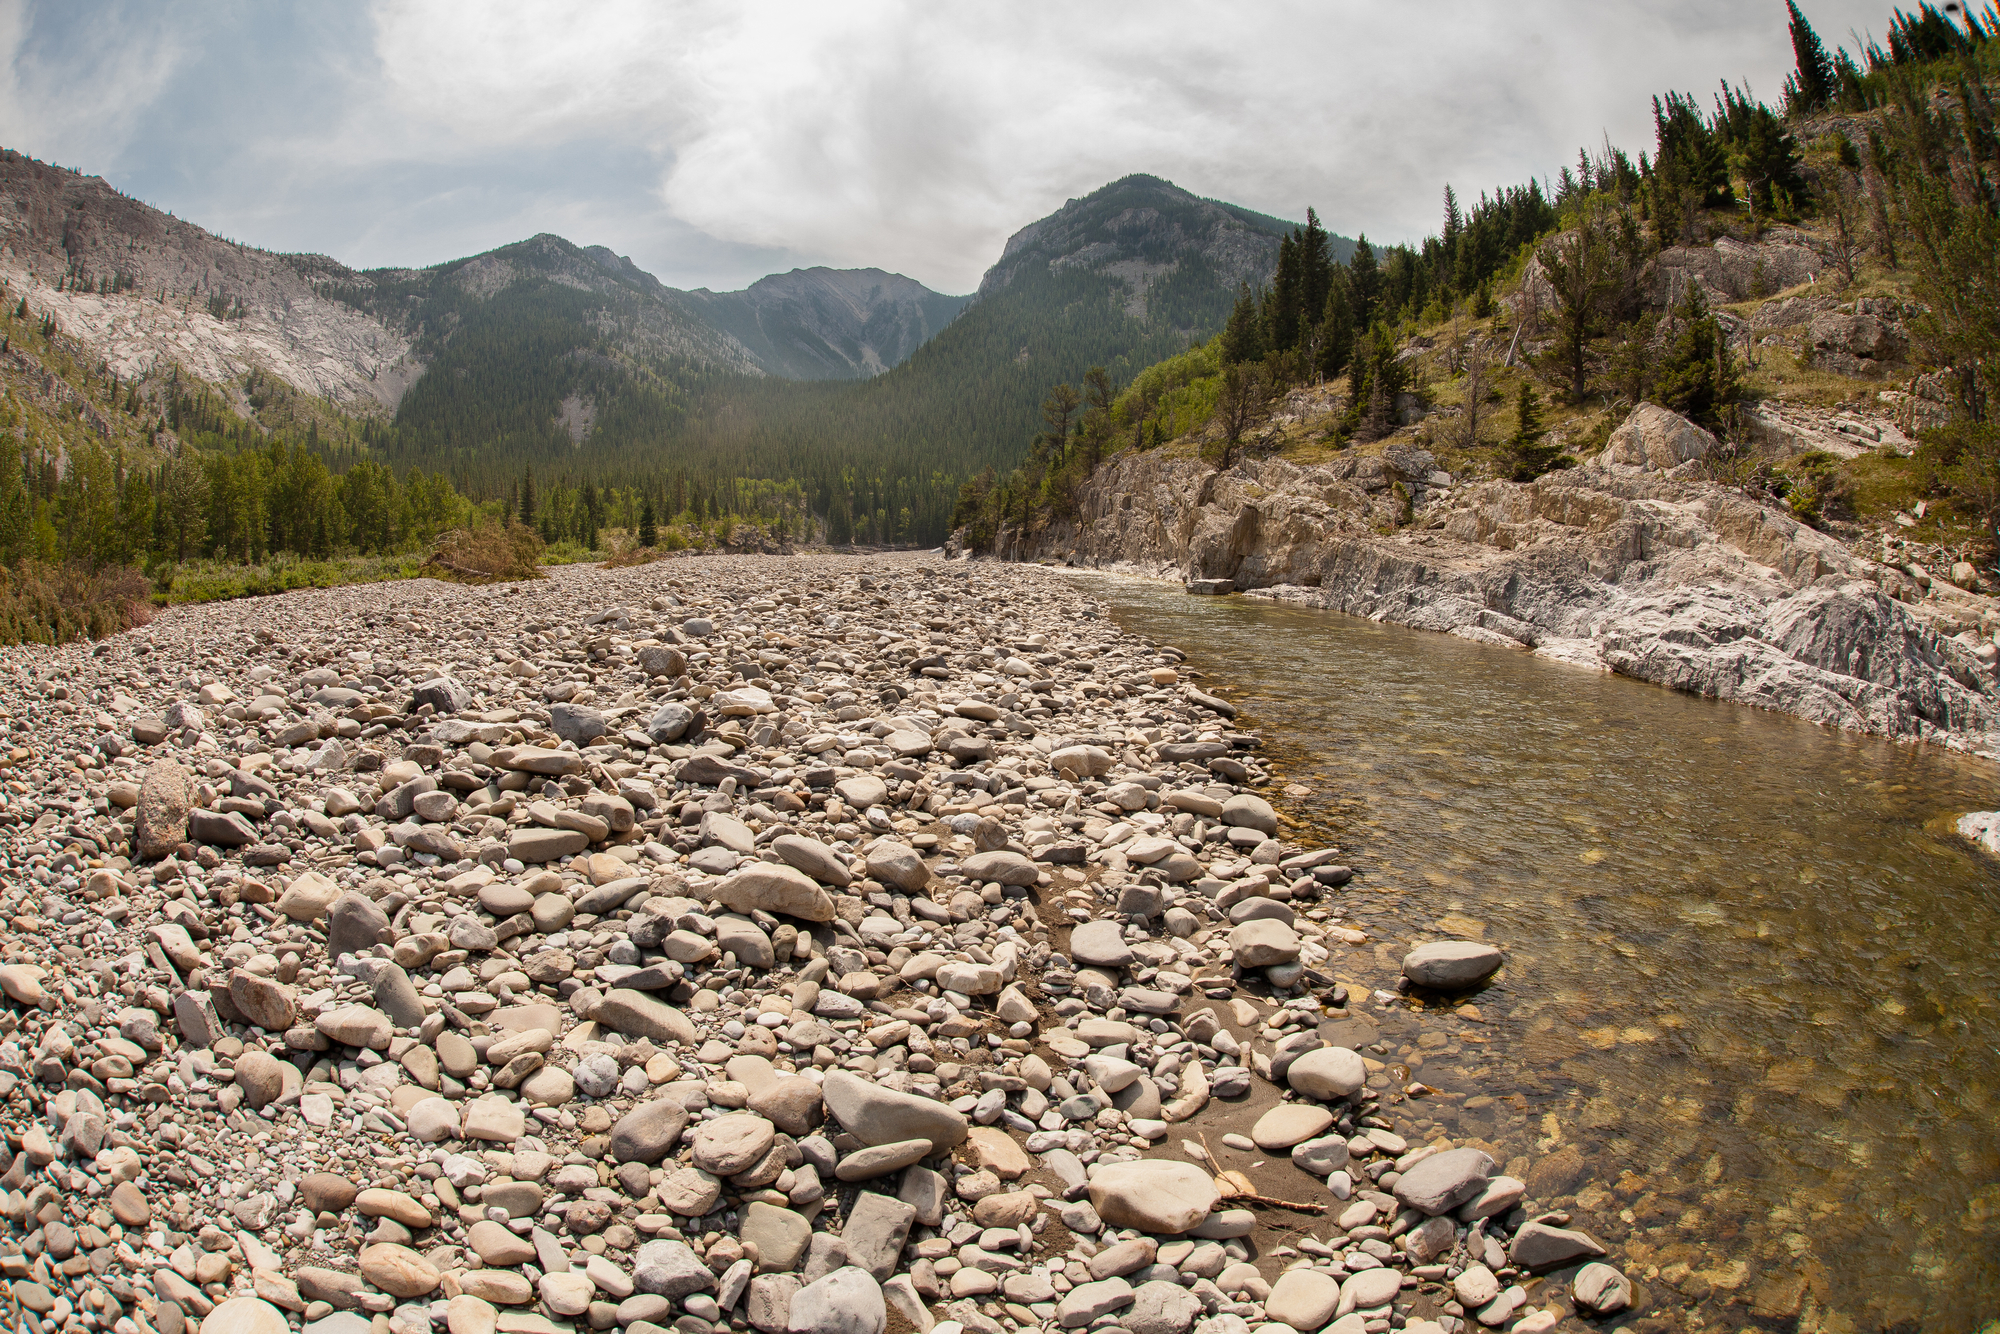 (2/3) The group scouts a river in nearby Alberta, also an easy drive from downtown Fernie.